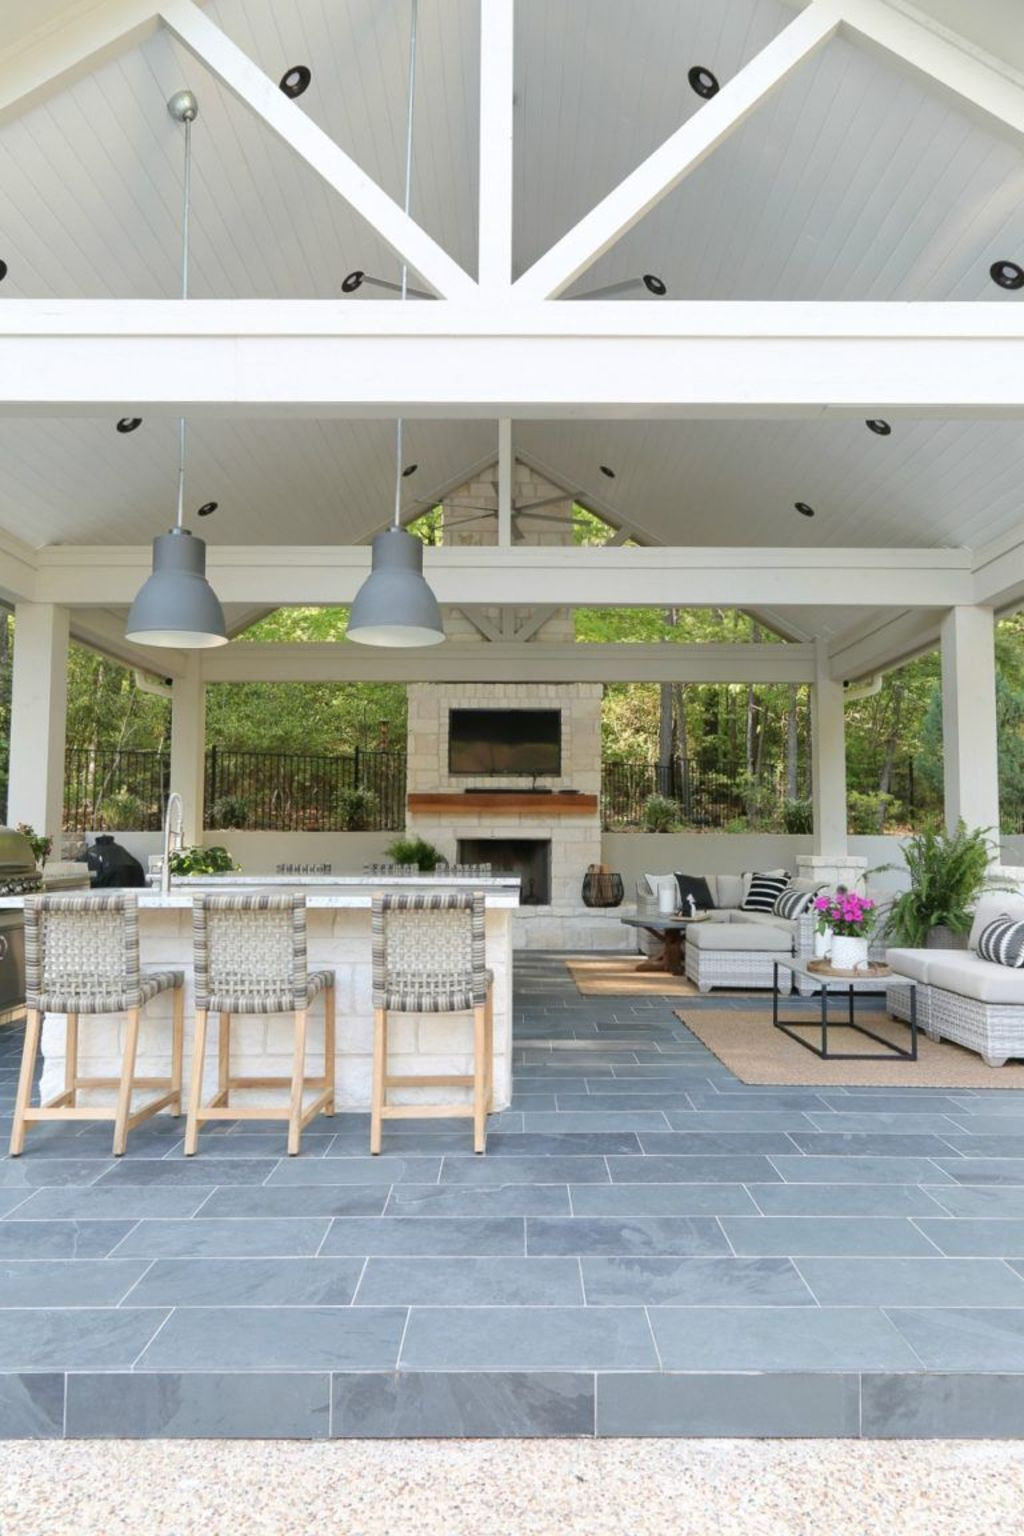 Back porch design ideas that perfect for every home as special space to make it anything you want Part (3)